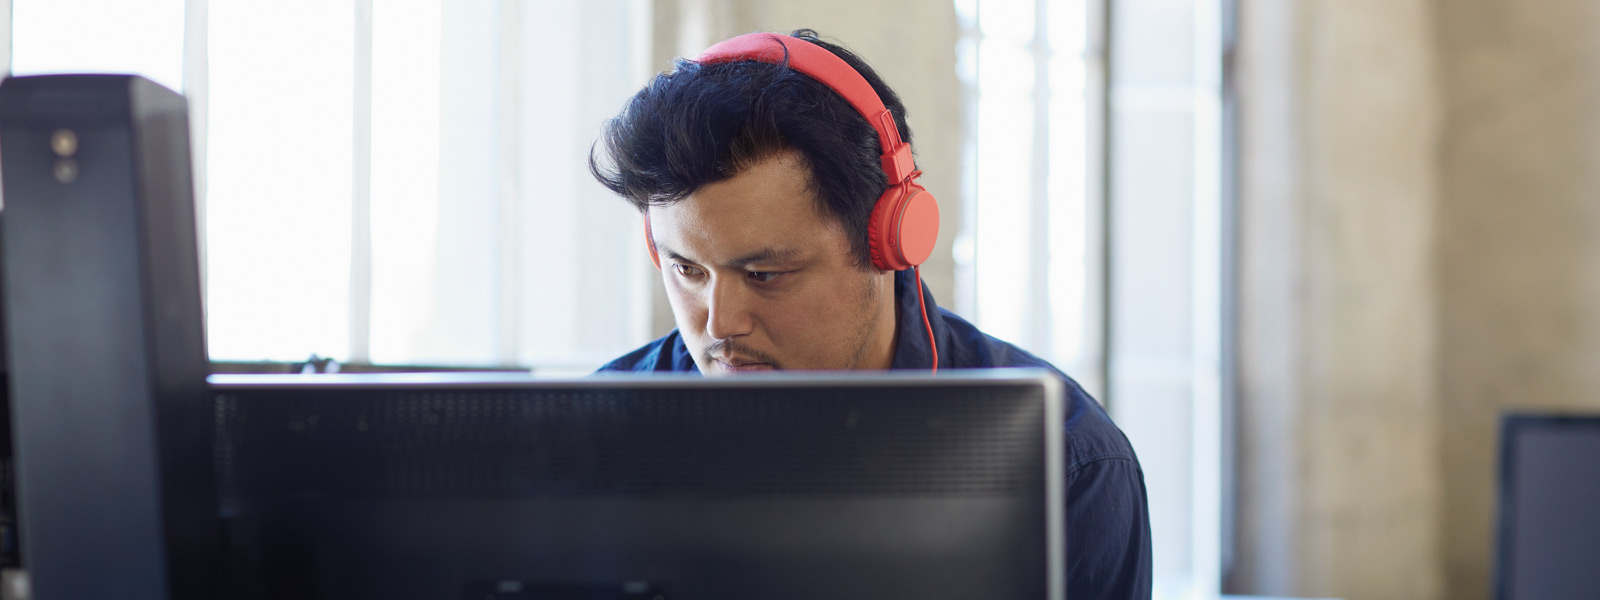 Man with red headphones sits at computer working